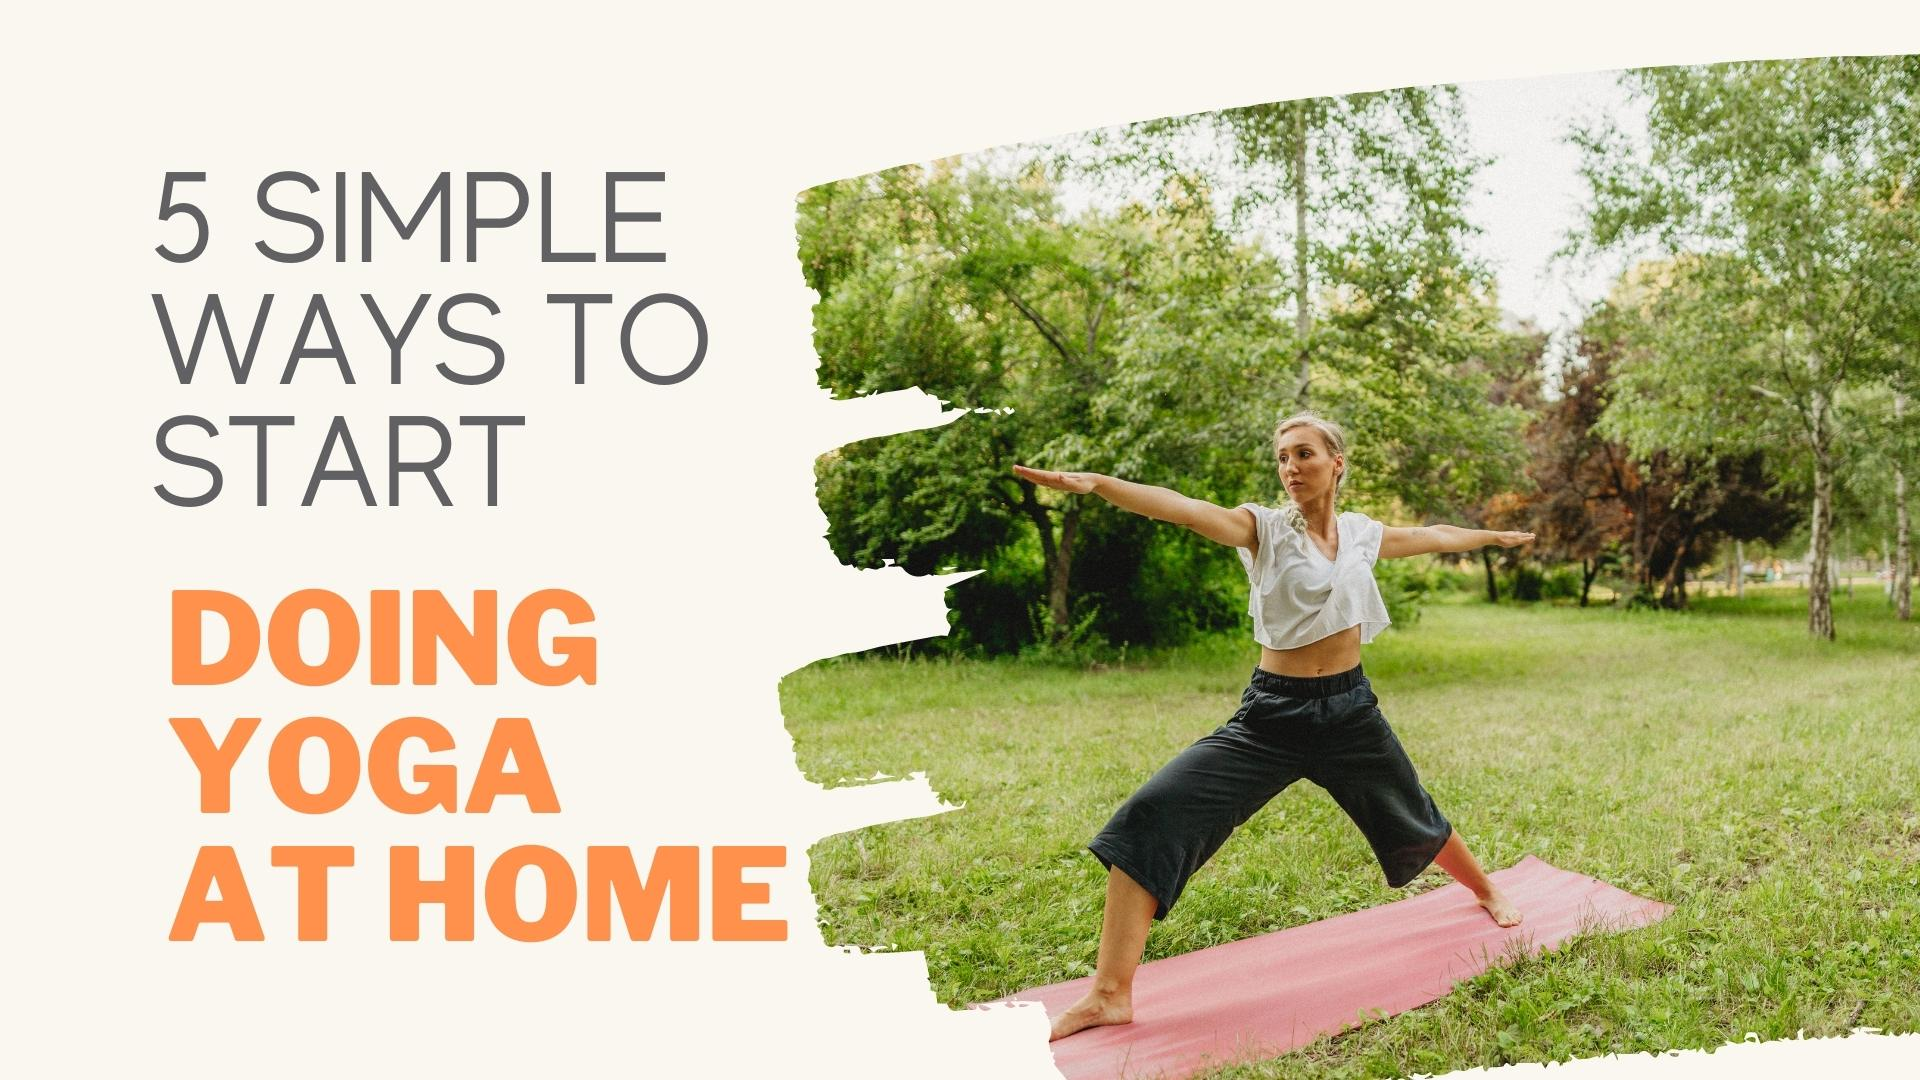 5 simple ways Doing Yoga at Home